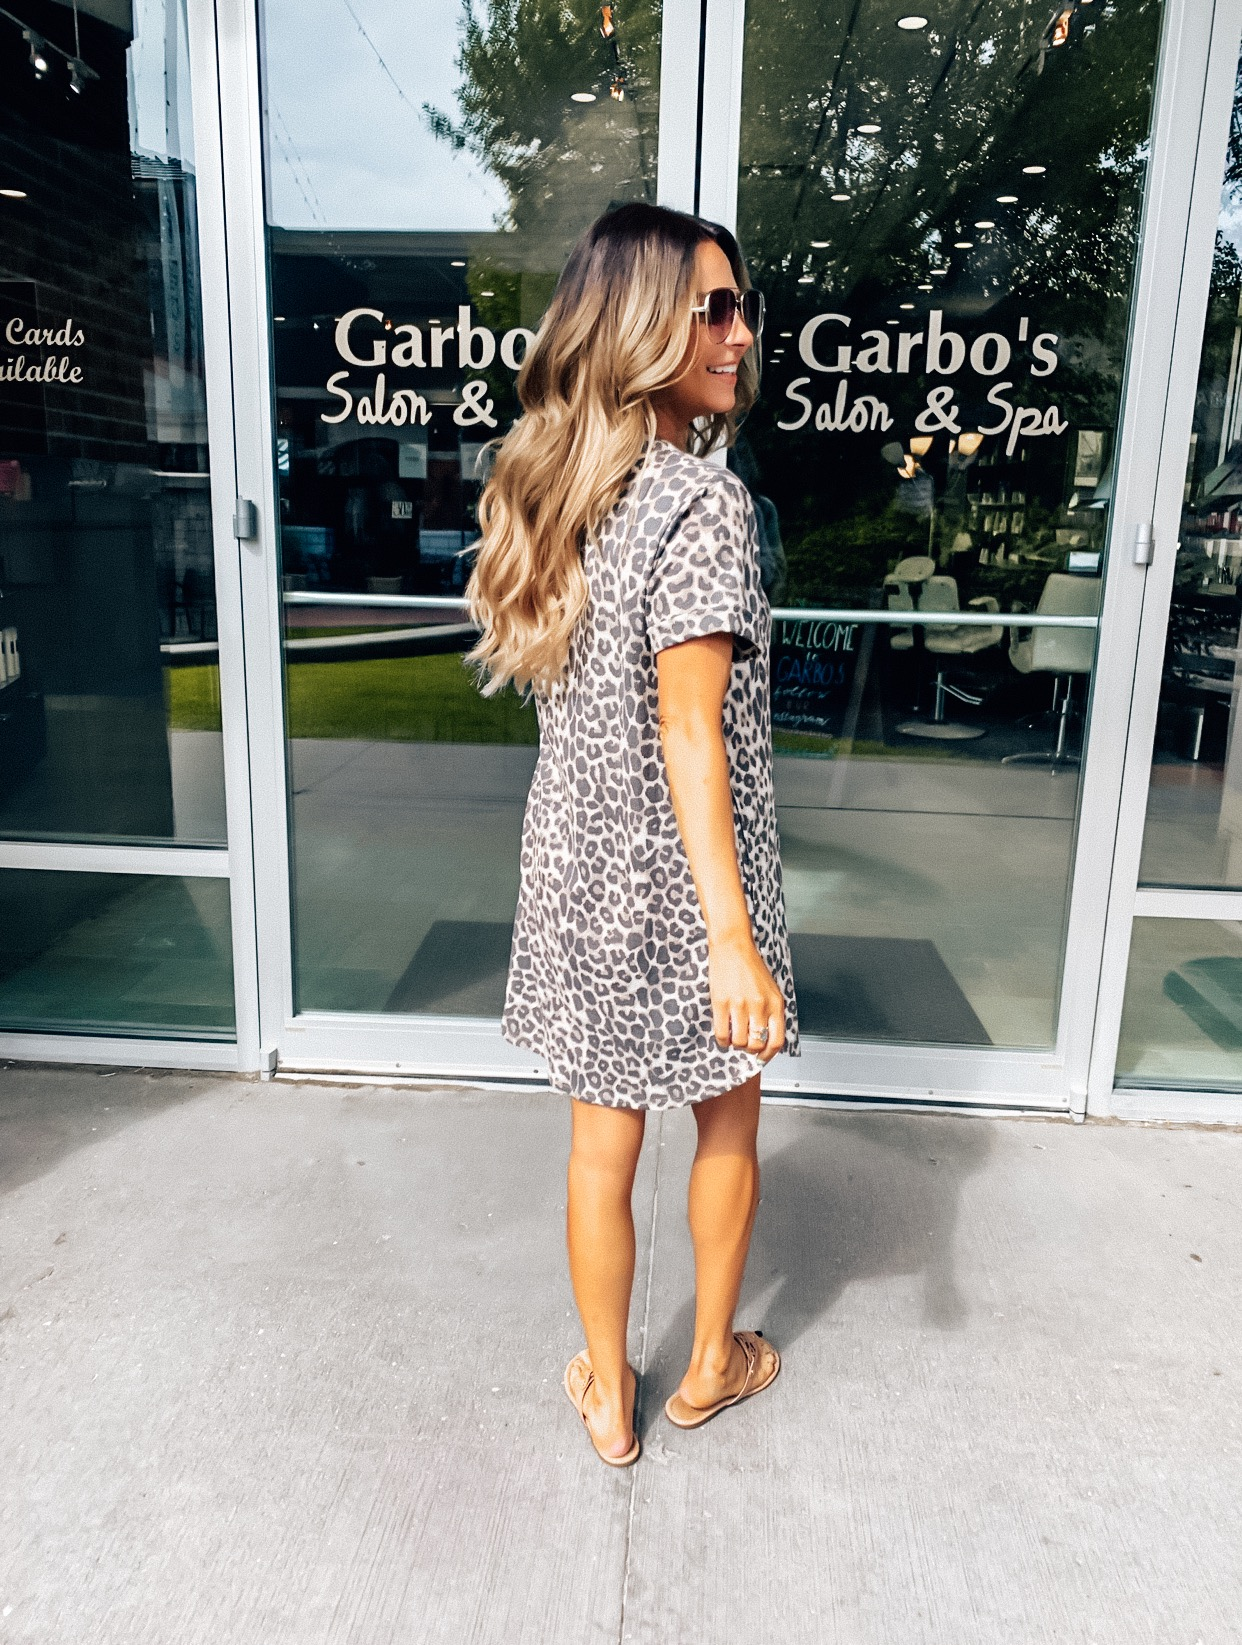 hand-tied extensions-garbo's-garbo's Omaha-garbo's village pointe-before and after-hair goals-hair transformation-hair before and after-sabby style-omaha blogger-10